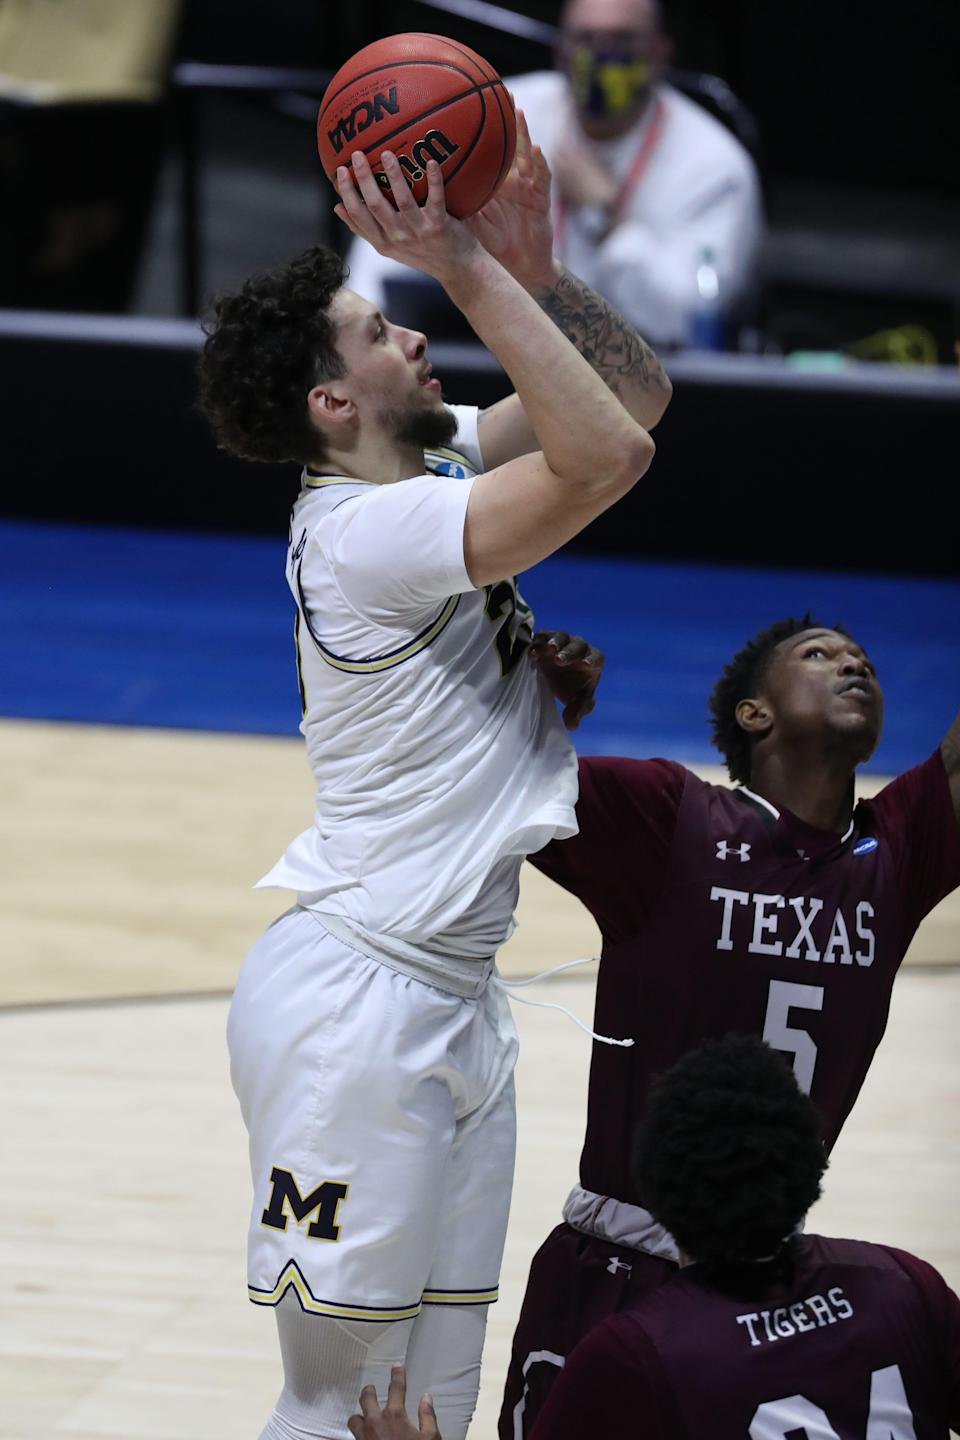 Michigan Wolverines forward Brandon Johns Jr. (23) shoots the ball against over Texas Southern Tigers forward John Walker III (24) and forward Joirdon Karl Nicholas (5) during the second half in the first round of the 2021 NCAA Tournament at Mackey Arena on March 20, 2021